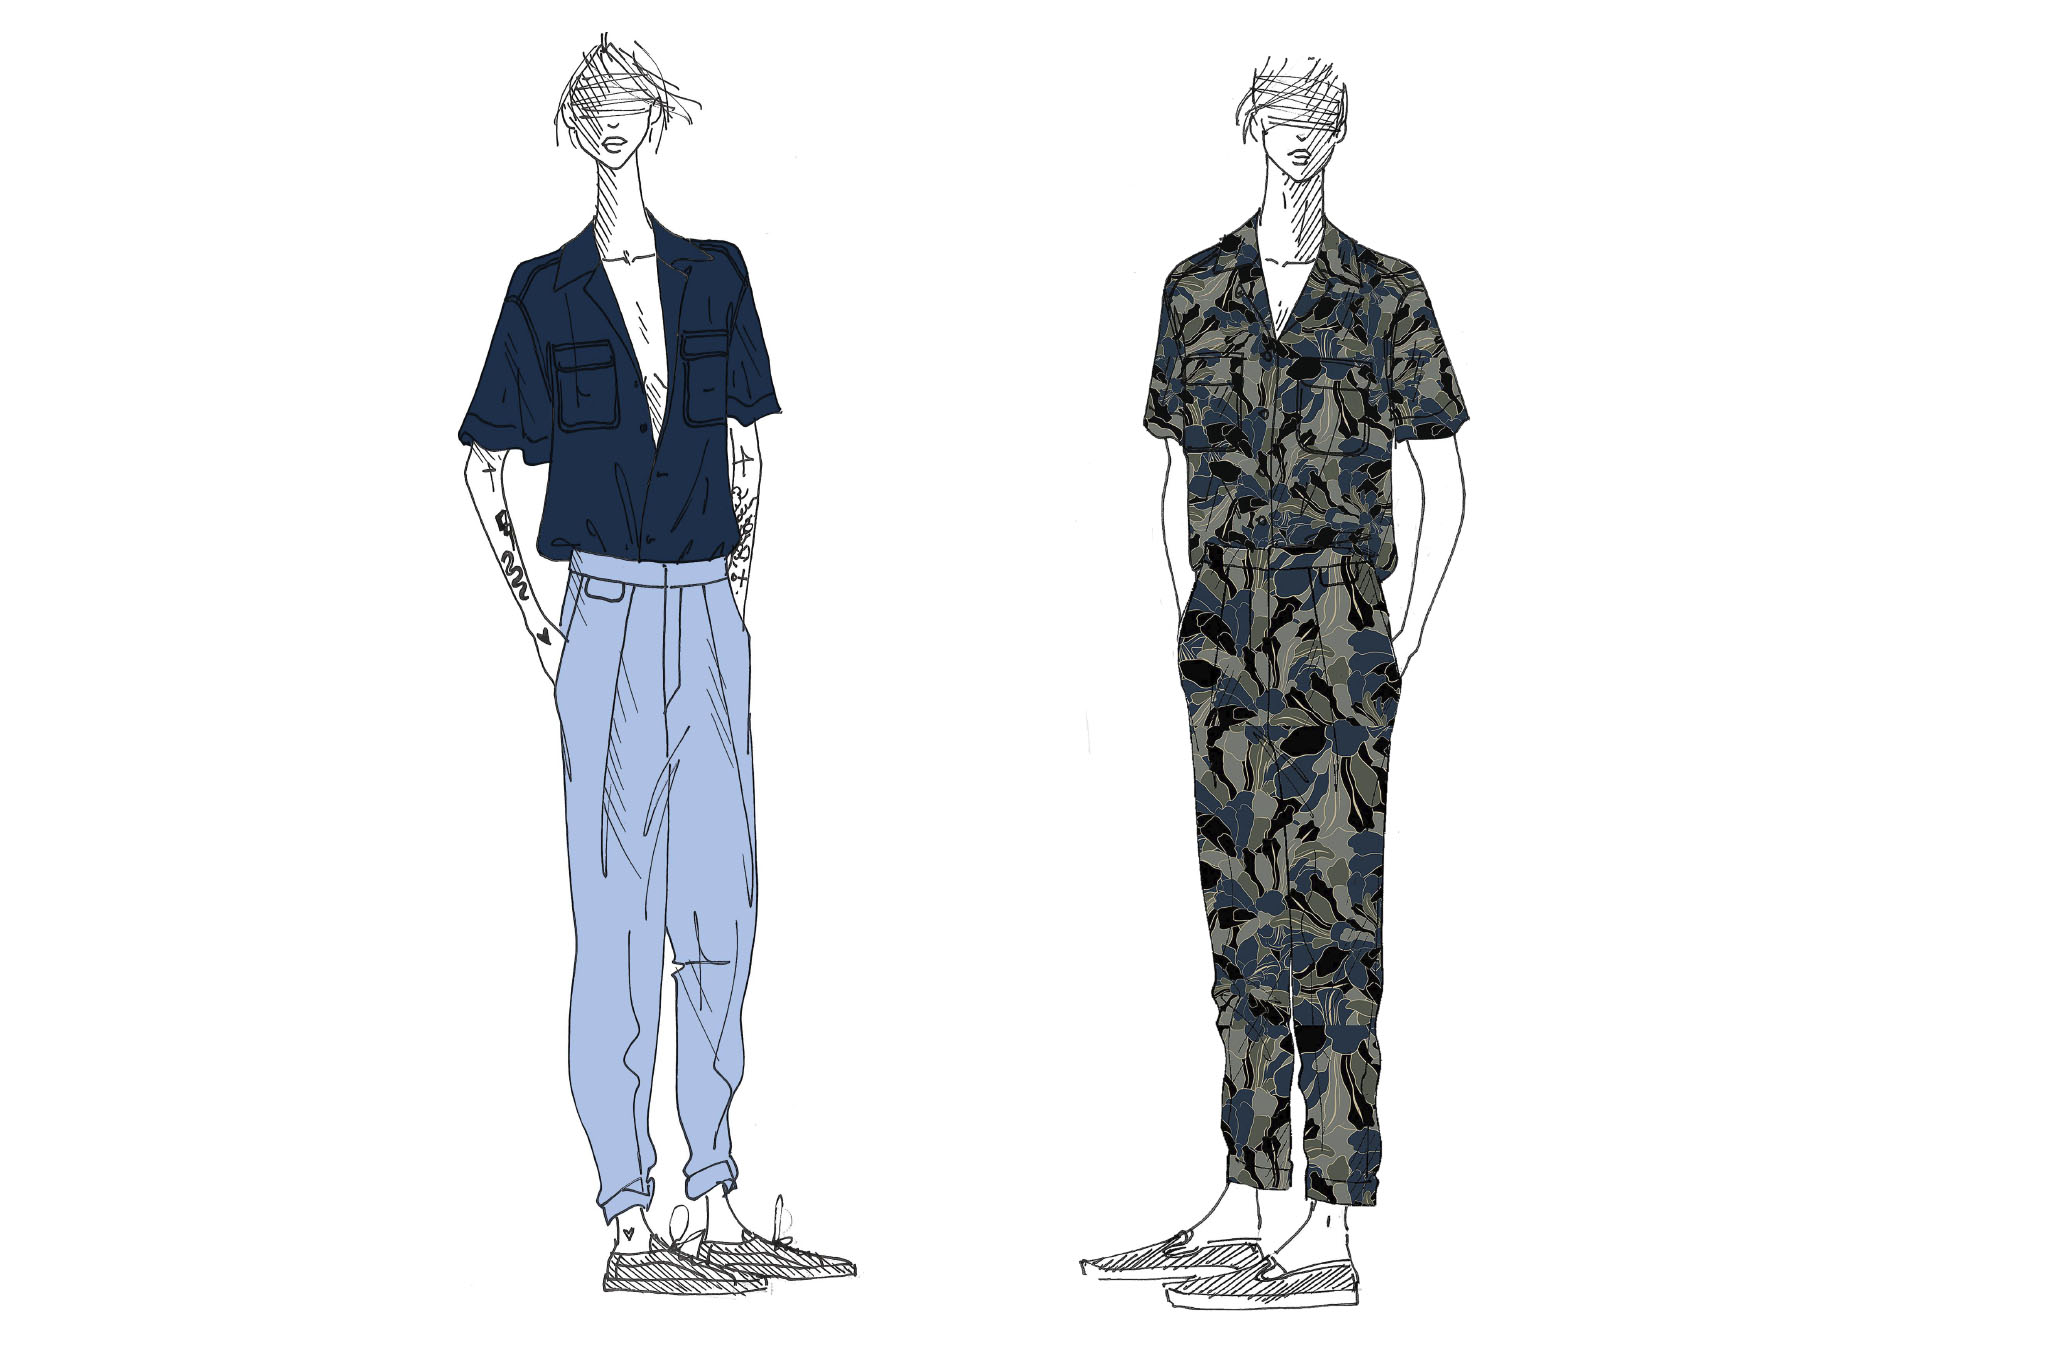 Sketches of looks from the Equipment Gender Fluid collection